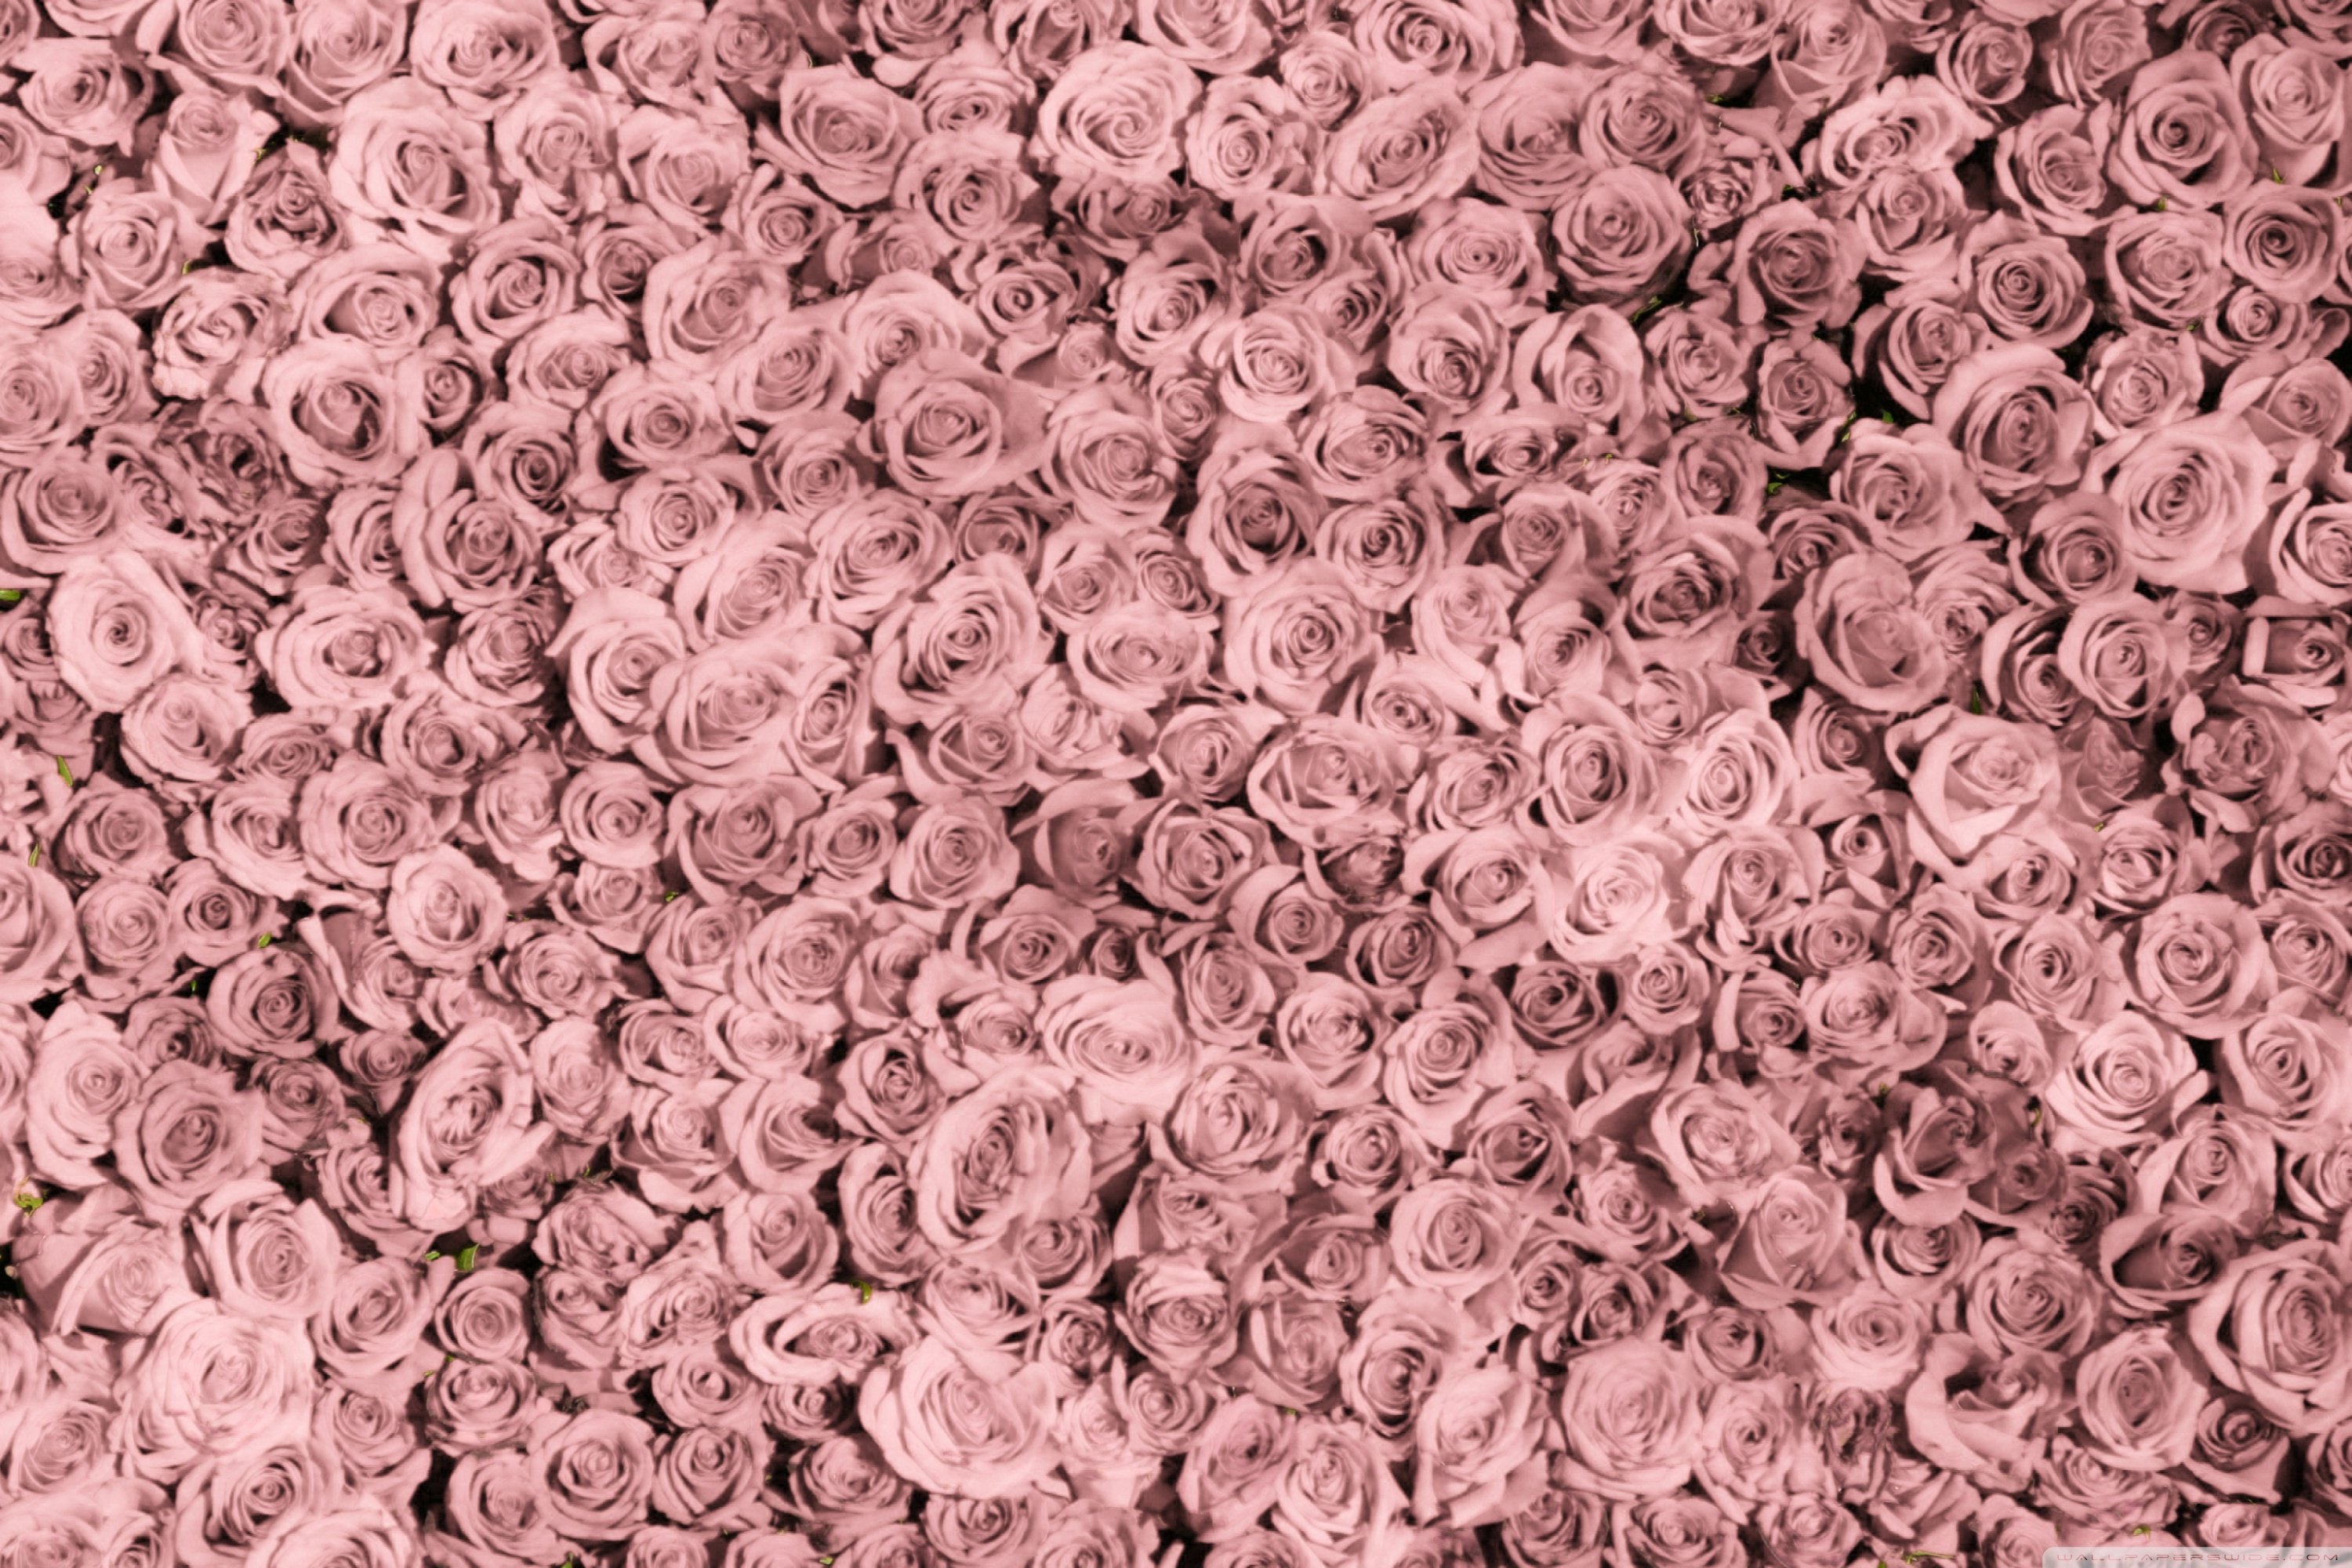 Vintage Rose Iphone Wallpapers Posted By Ryan Mercado